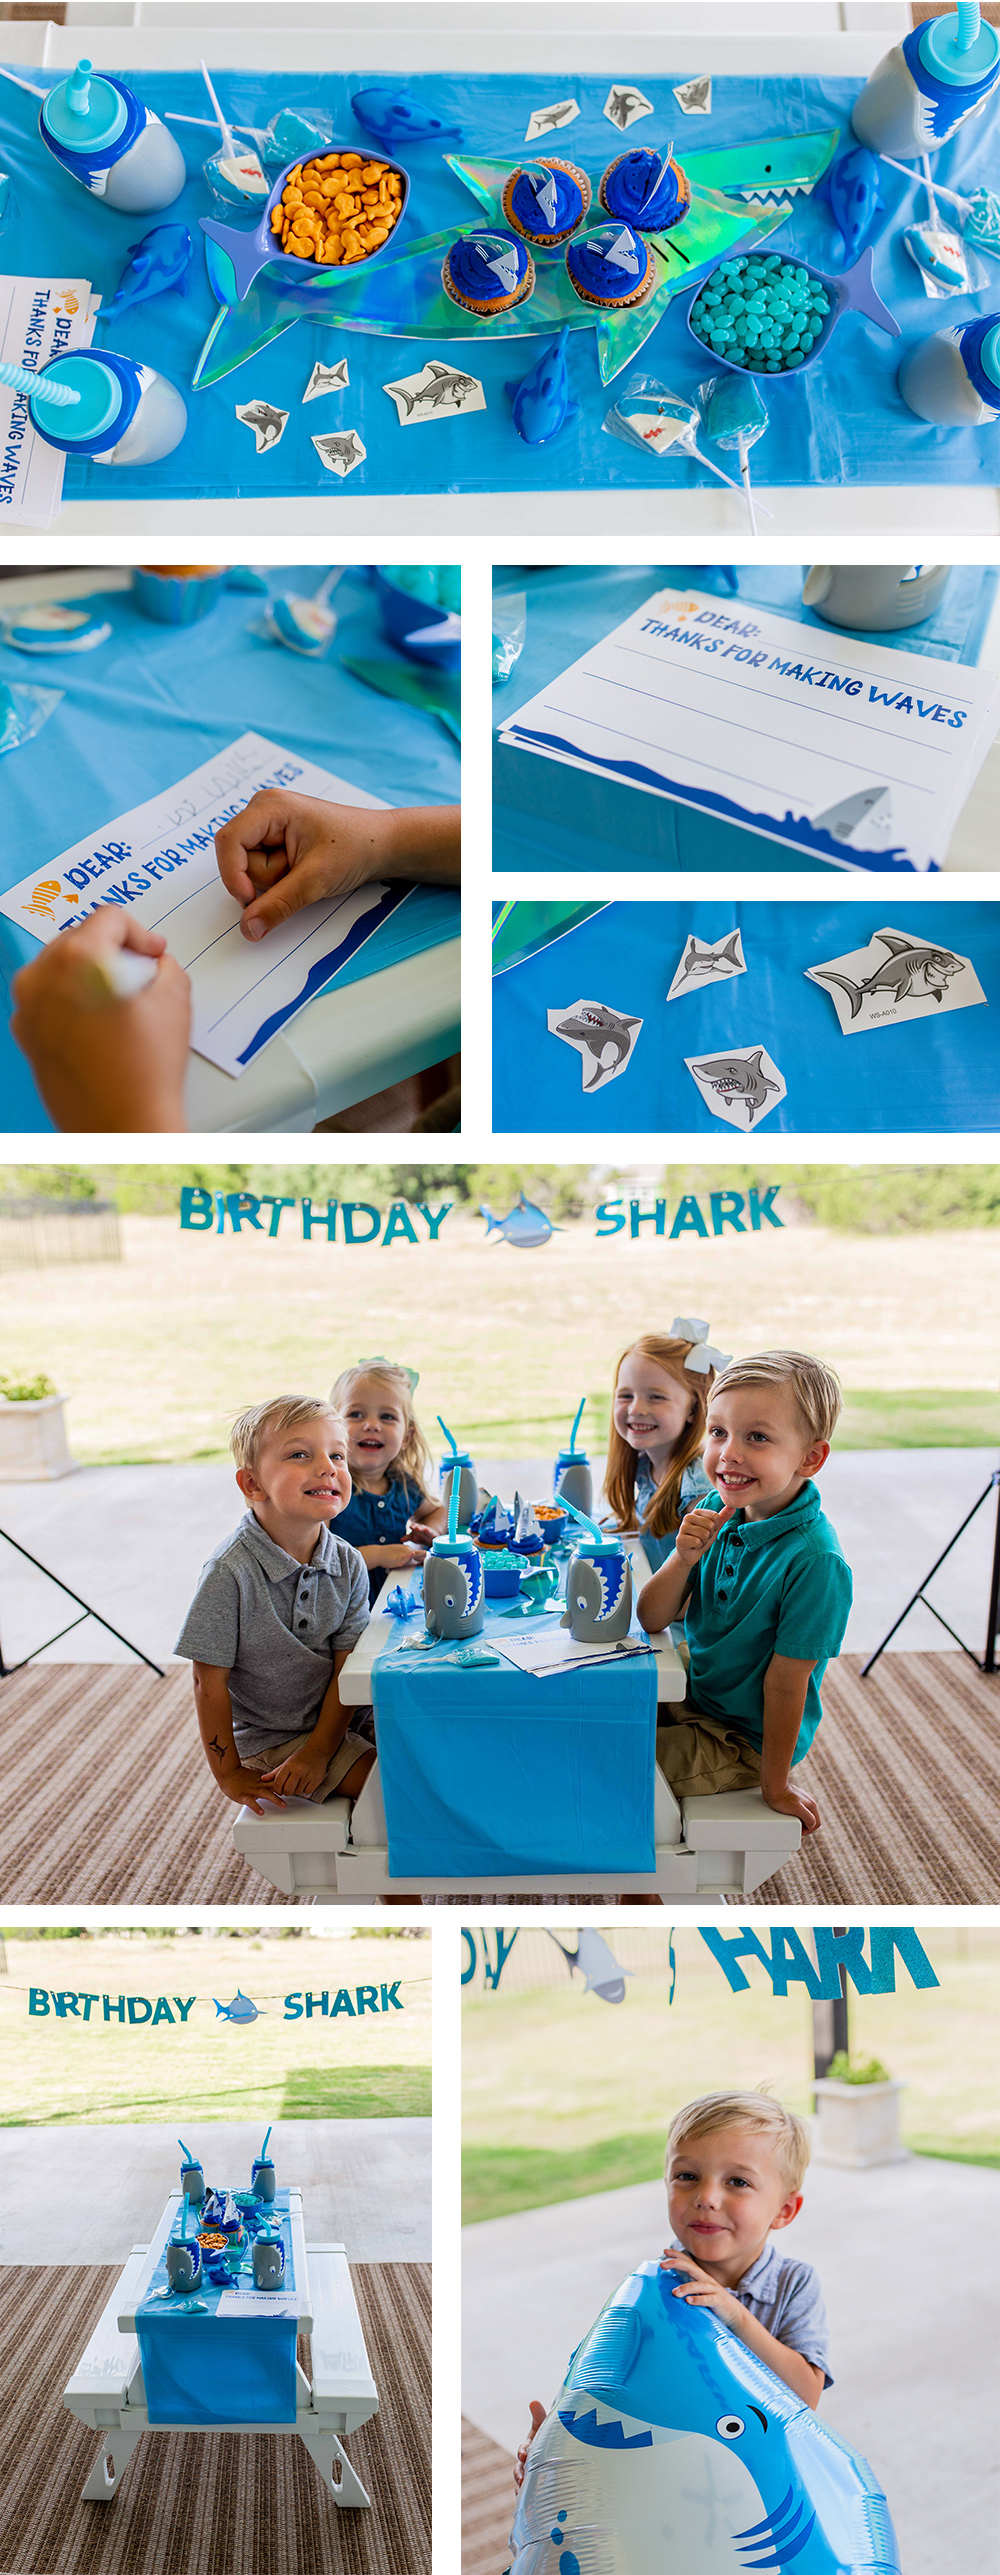 Children's shark themed party lifestyle brand photography. Photo by Erin Reas based in Austin, TX